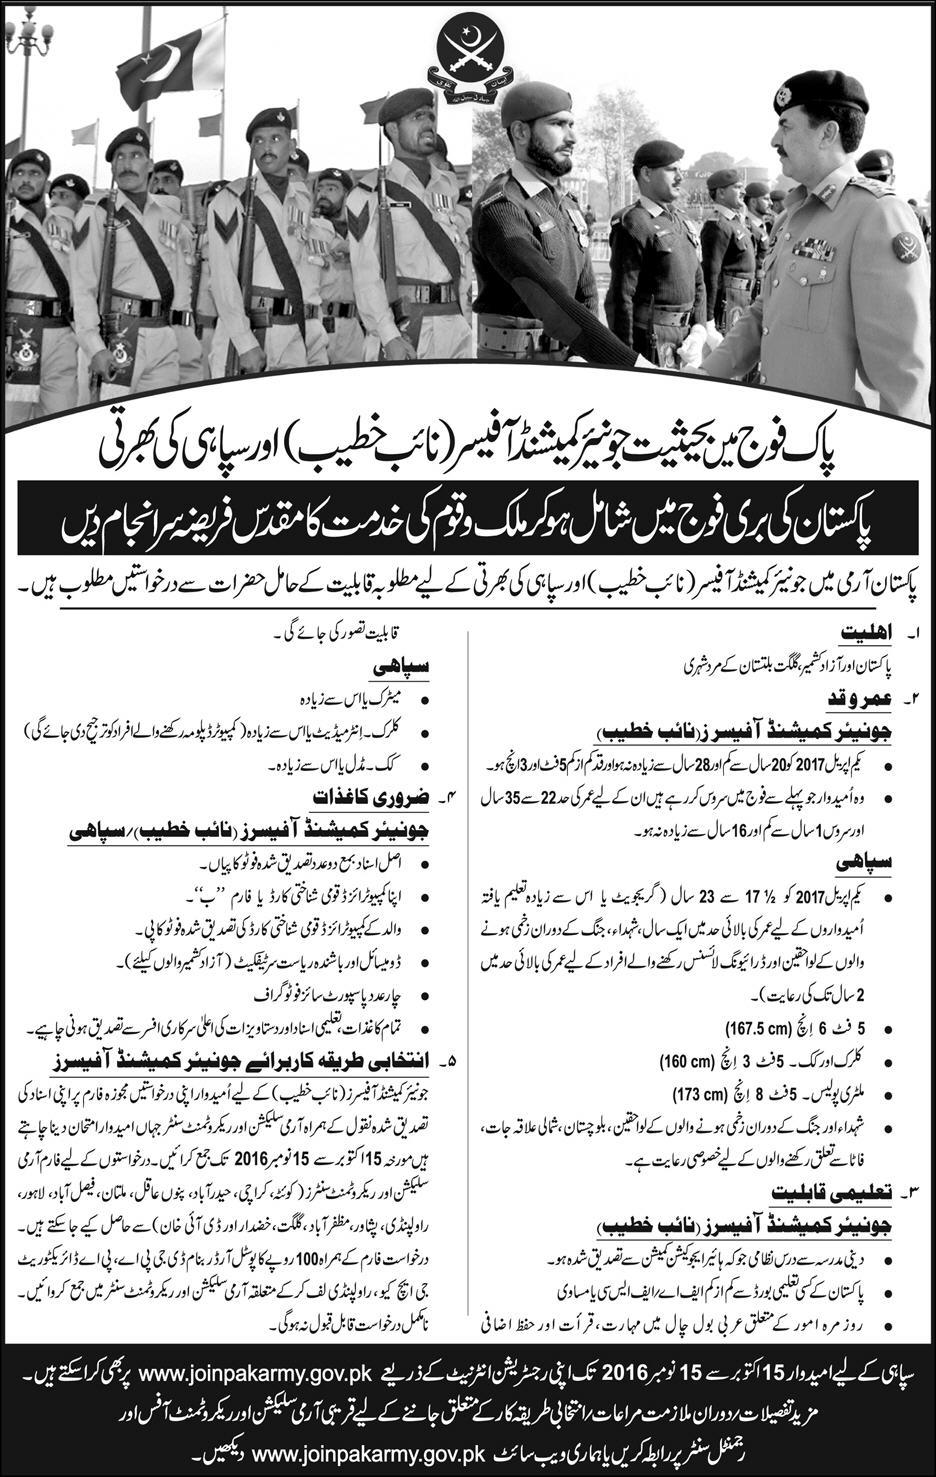 Join Pakistan Army As Soldier 2016 Junior Commissioned Officer Online Registration